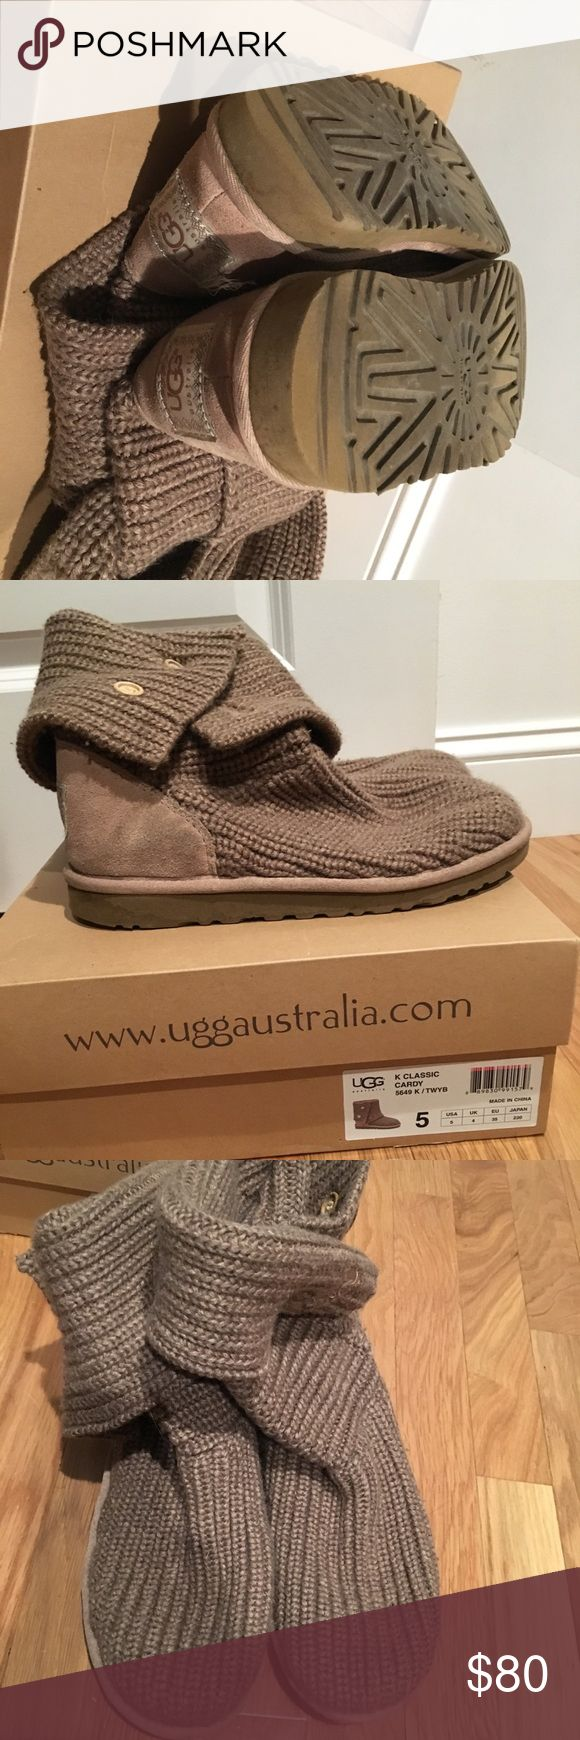 Uggs classic Cardy. Tan size 5. Sweater style UGG classic cardy boots. Used a only a handful of times.  Size 5 (I️ wear a ladies 7 these fit my foot fine!) UGG Shoes Winter & Rain Boots